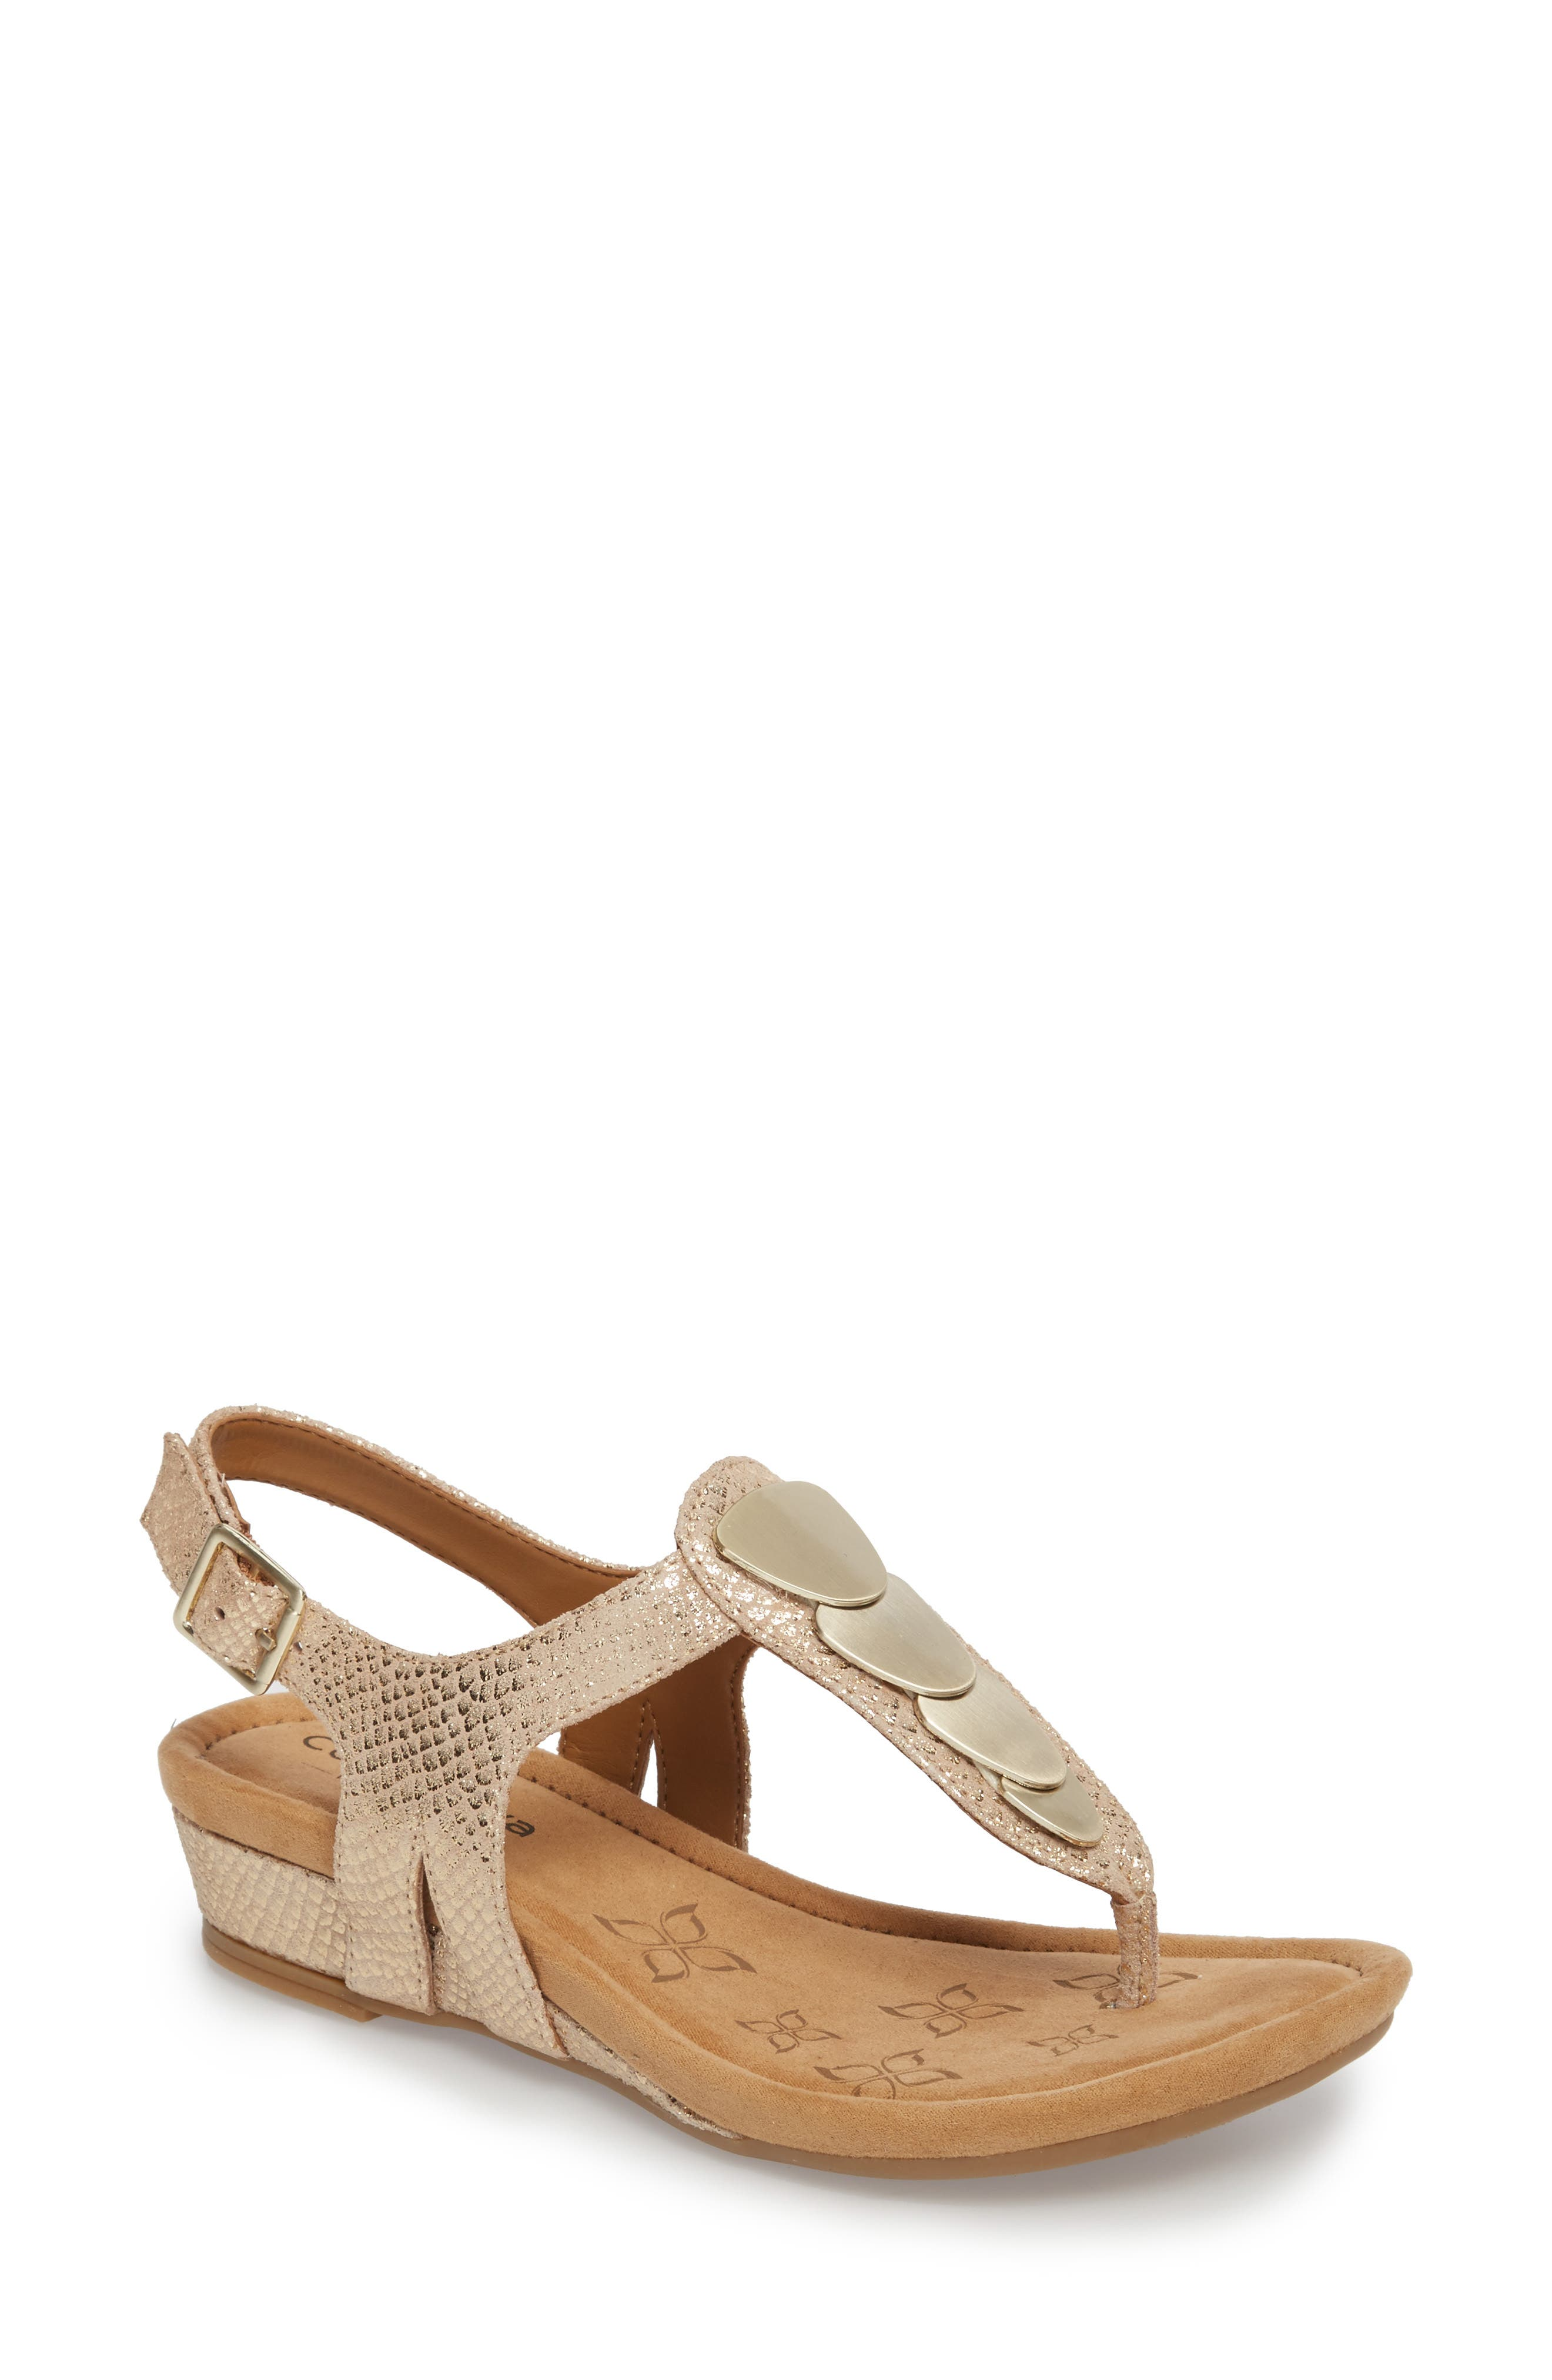 Summit Wedge Sandal,                             Main thumbnail 1, color,                             Gold Suede